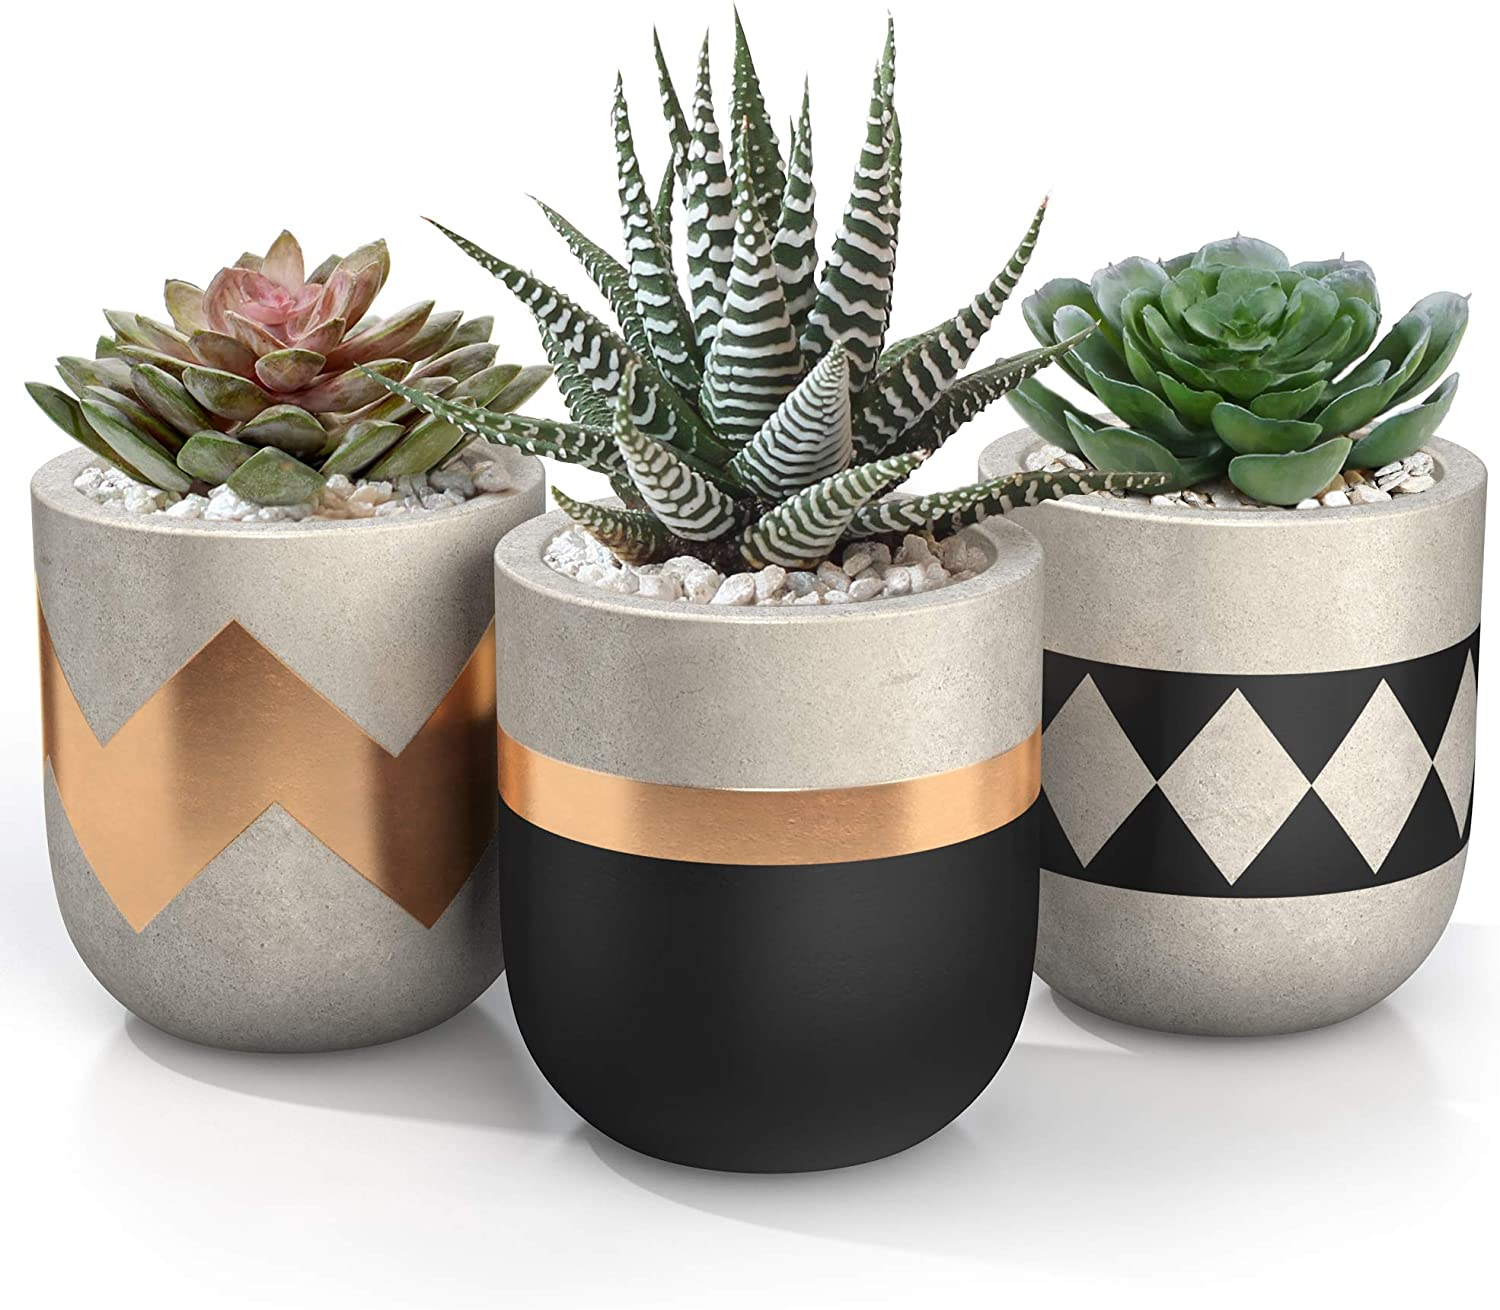 3 inch Small Succulent Pots with Drainage - Set of 3 Concrete Planter Pots  for Succulent Plants - Cement Planter Cactus Pots - Use as Succulent